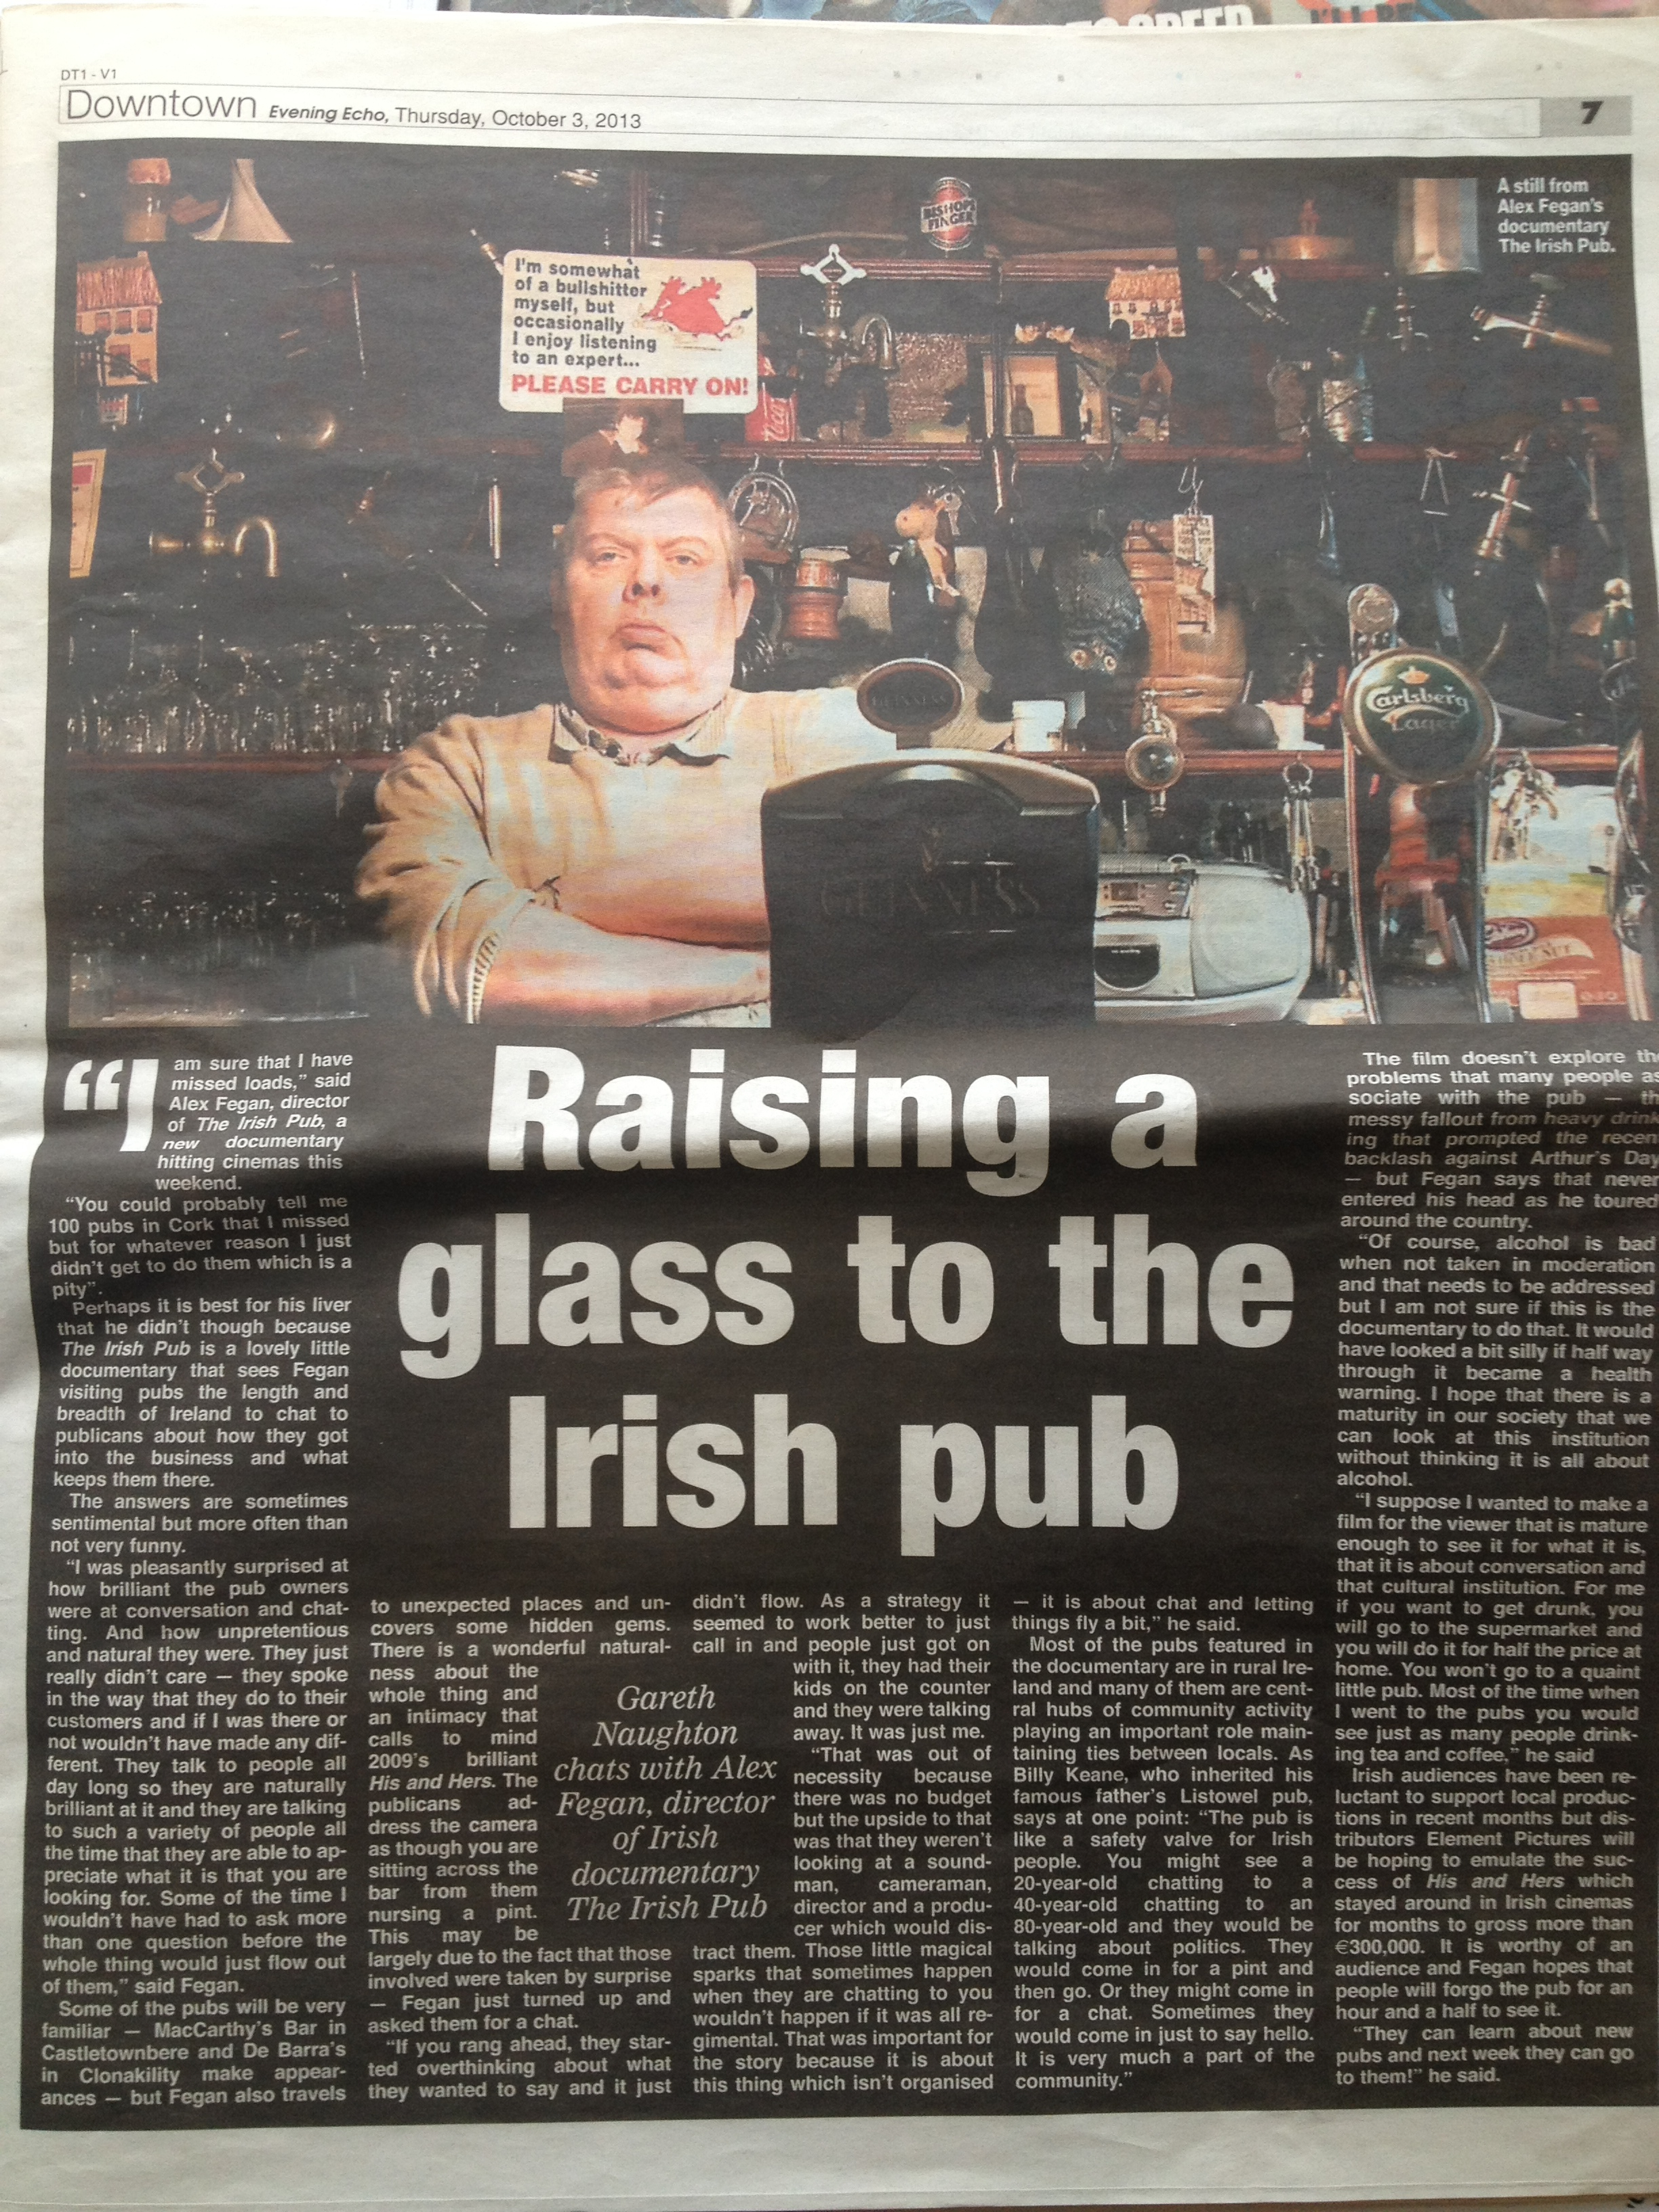 Evening-Echo-feature-on-The-Irish-Pub